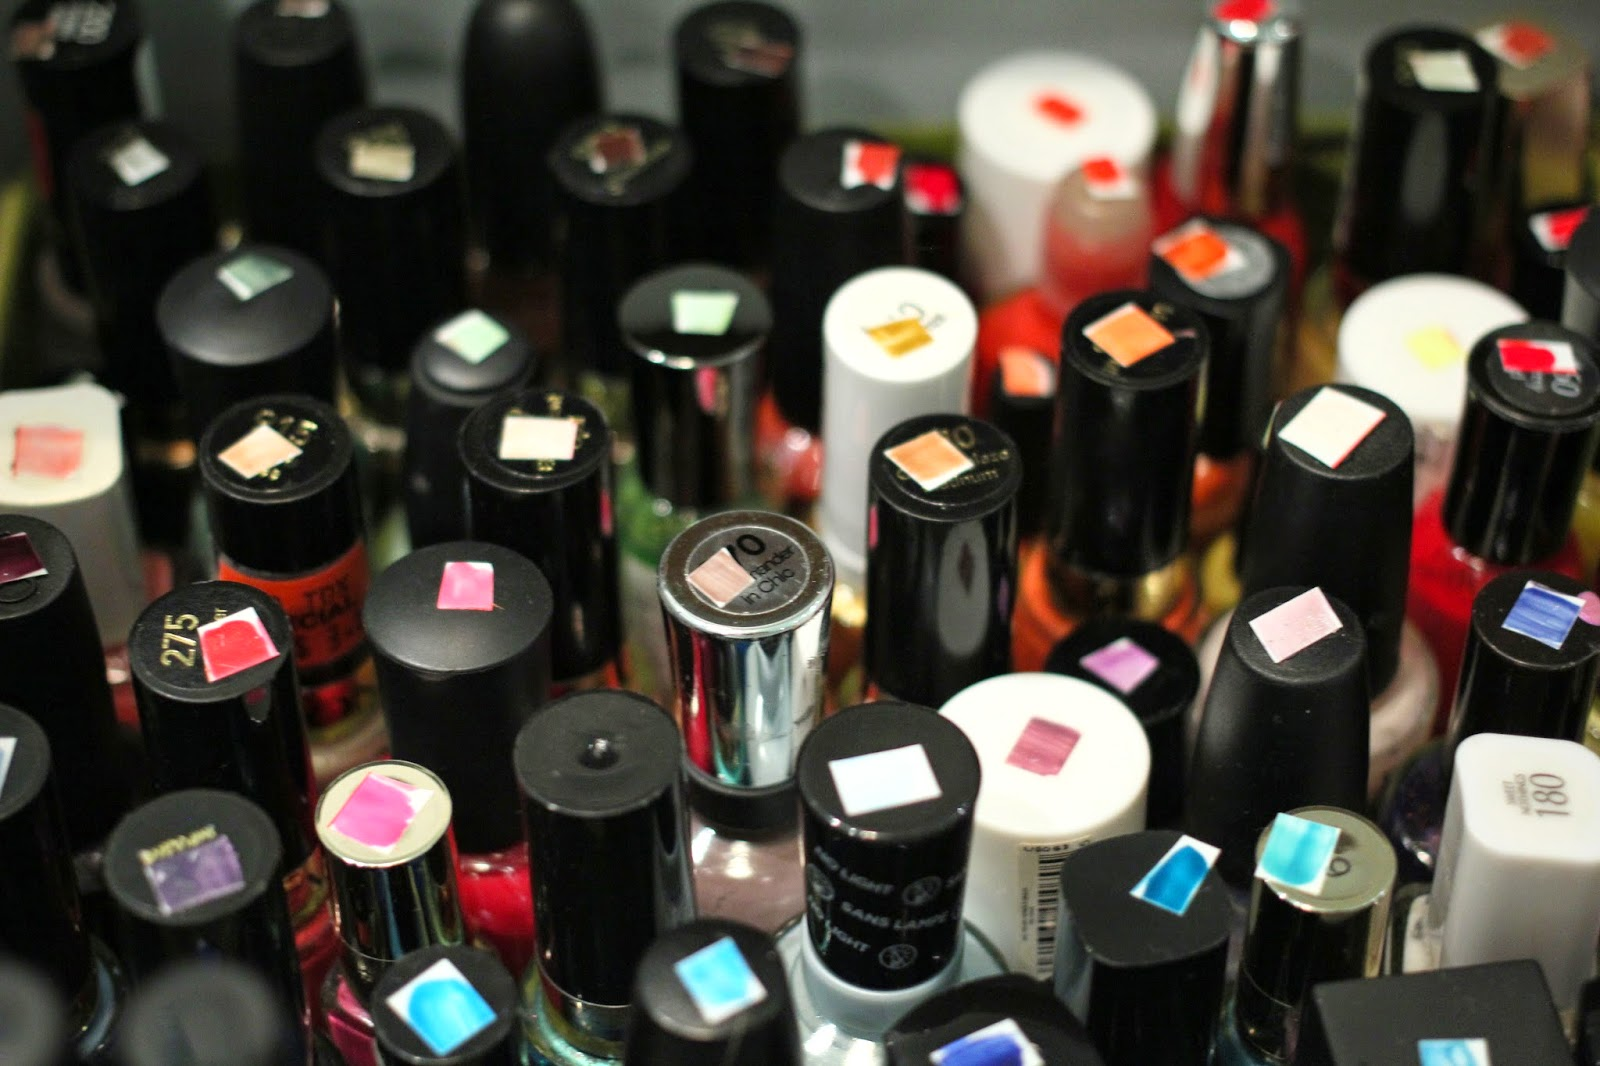 nail polish collection, nail polish swatches, nail polish system, nail polish storage